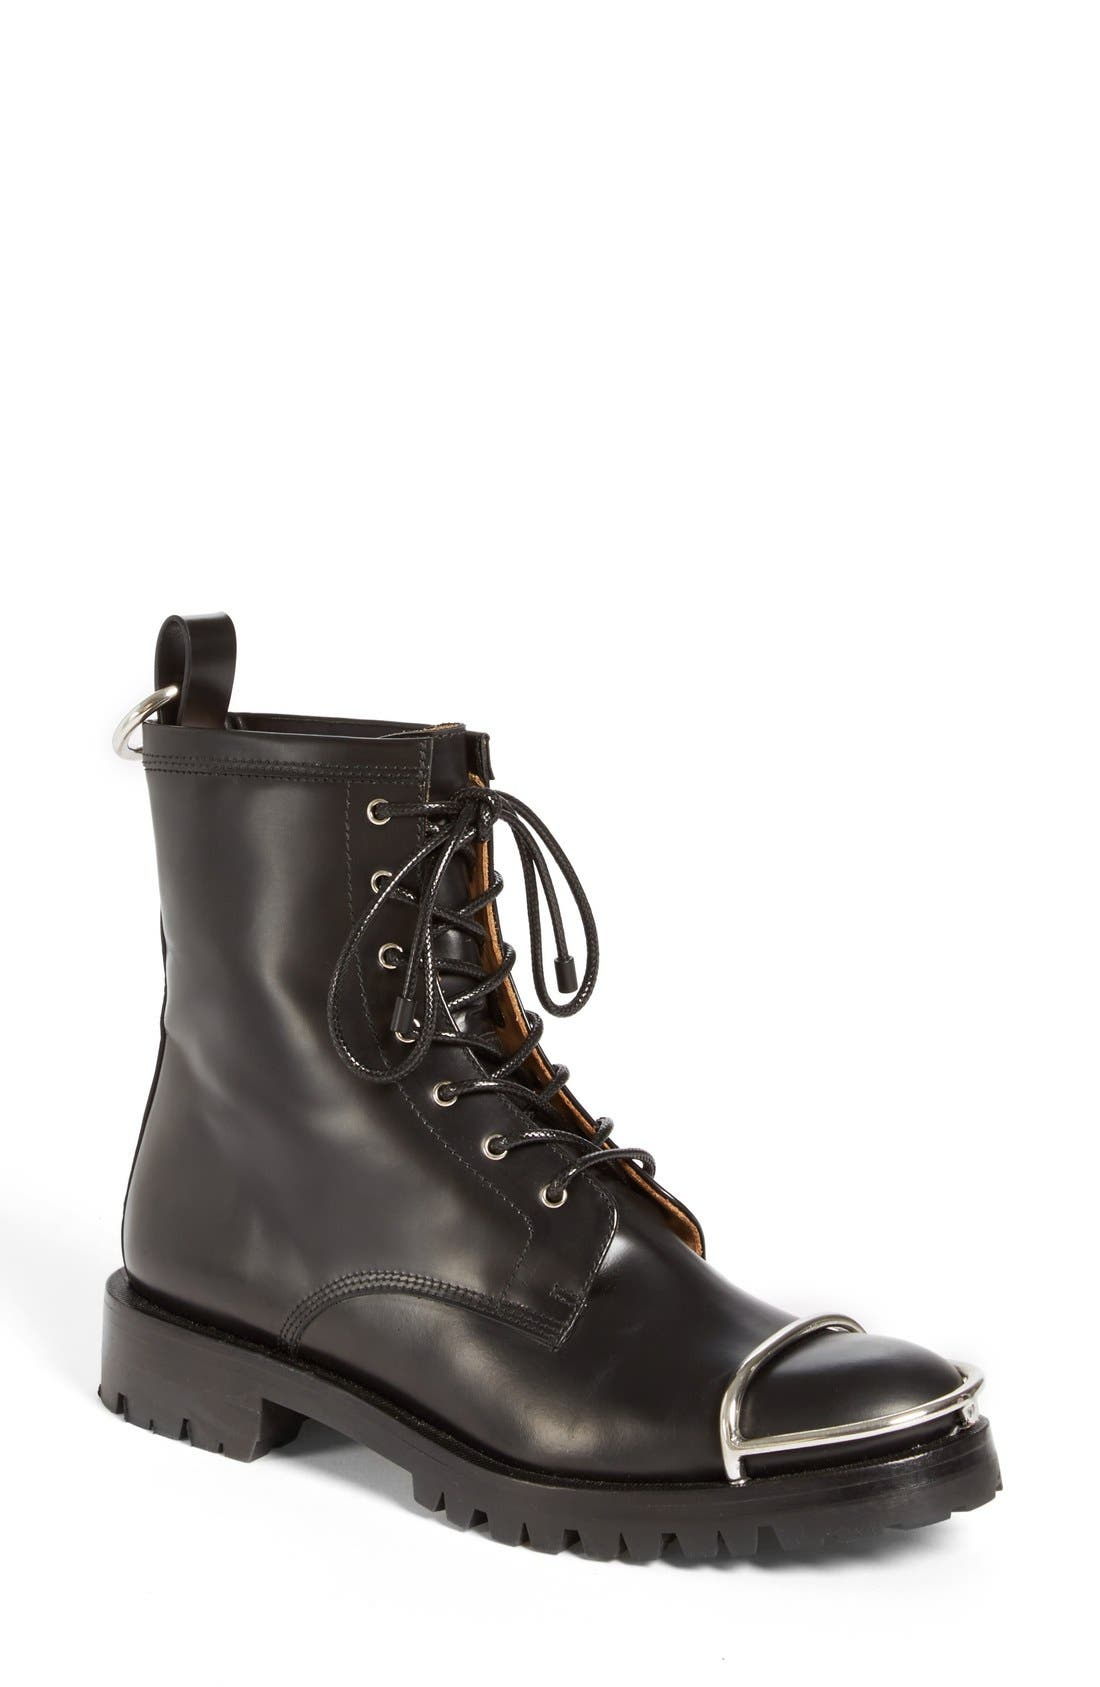 Alternate Image 1 Selected - Alexander Wang 'Lyndon' Military Boot (Women)